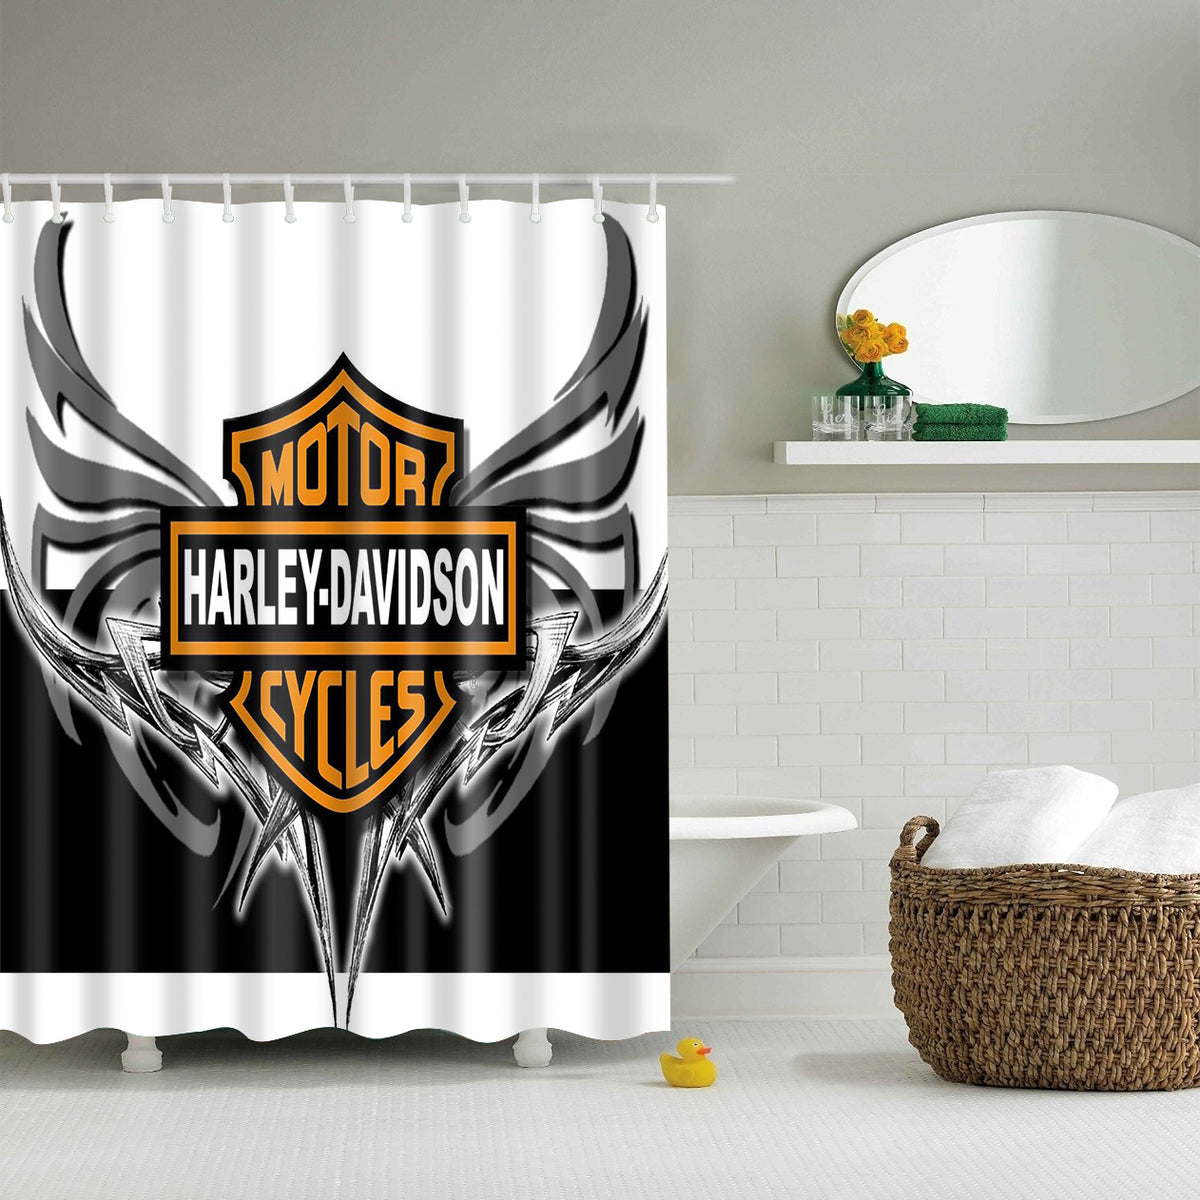 Motor Harley Davidson Cycles Shower Curtain